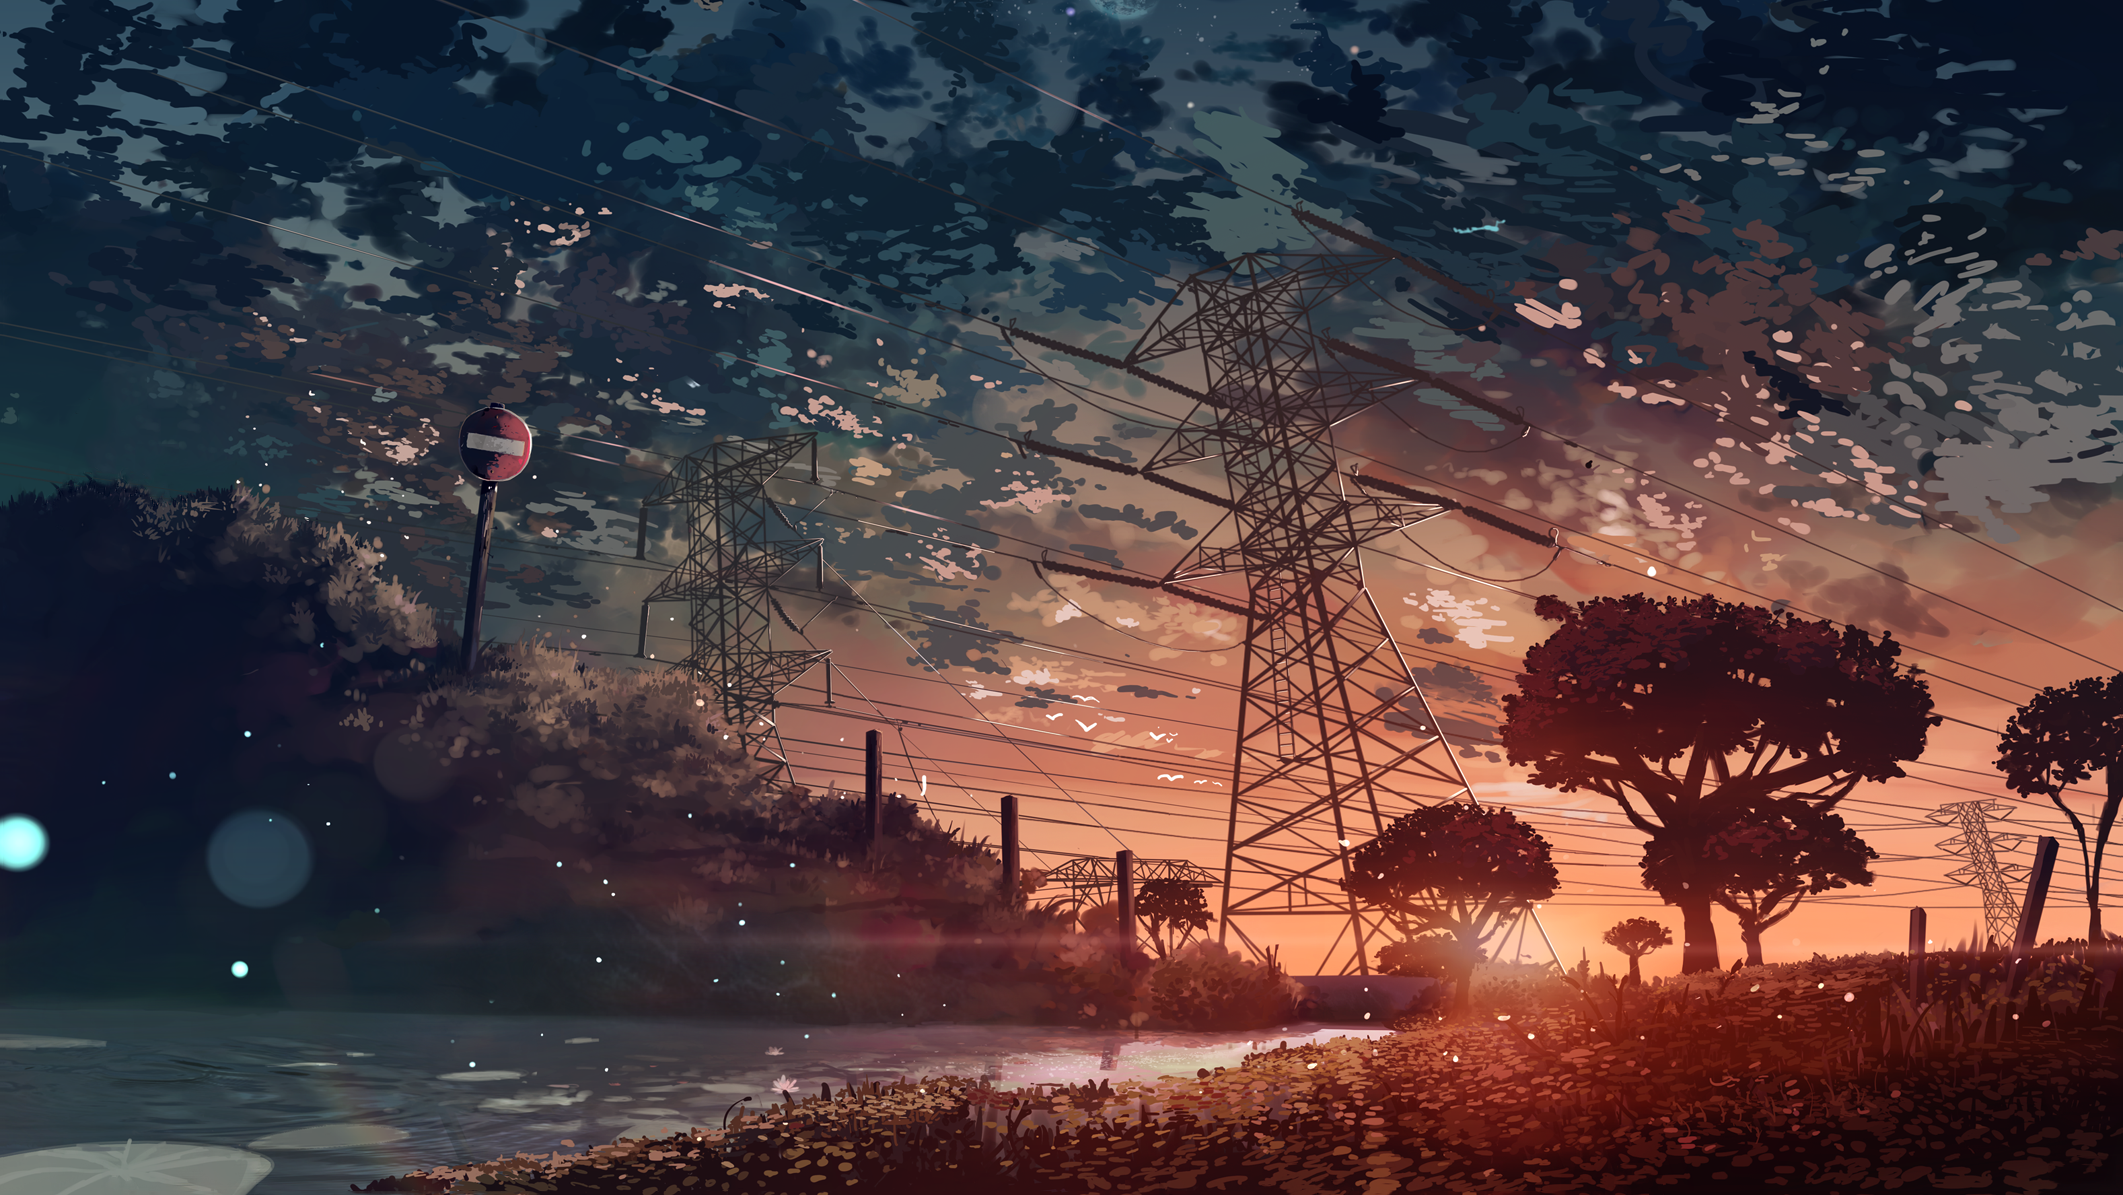 5 Centimeters Per Second Anime Hd Wallpapers Wallpaper Cave